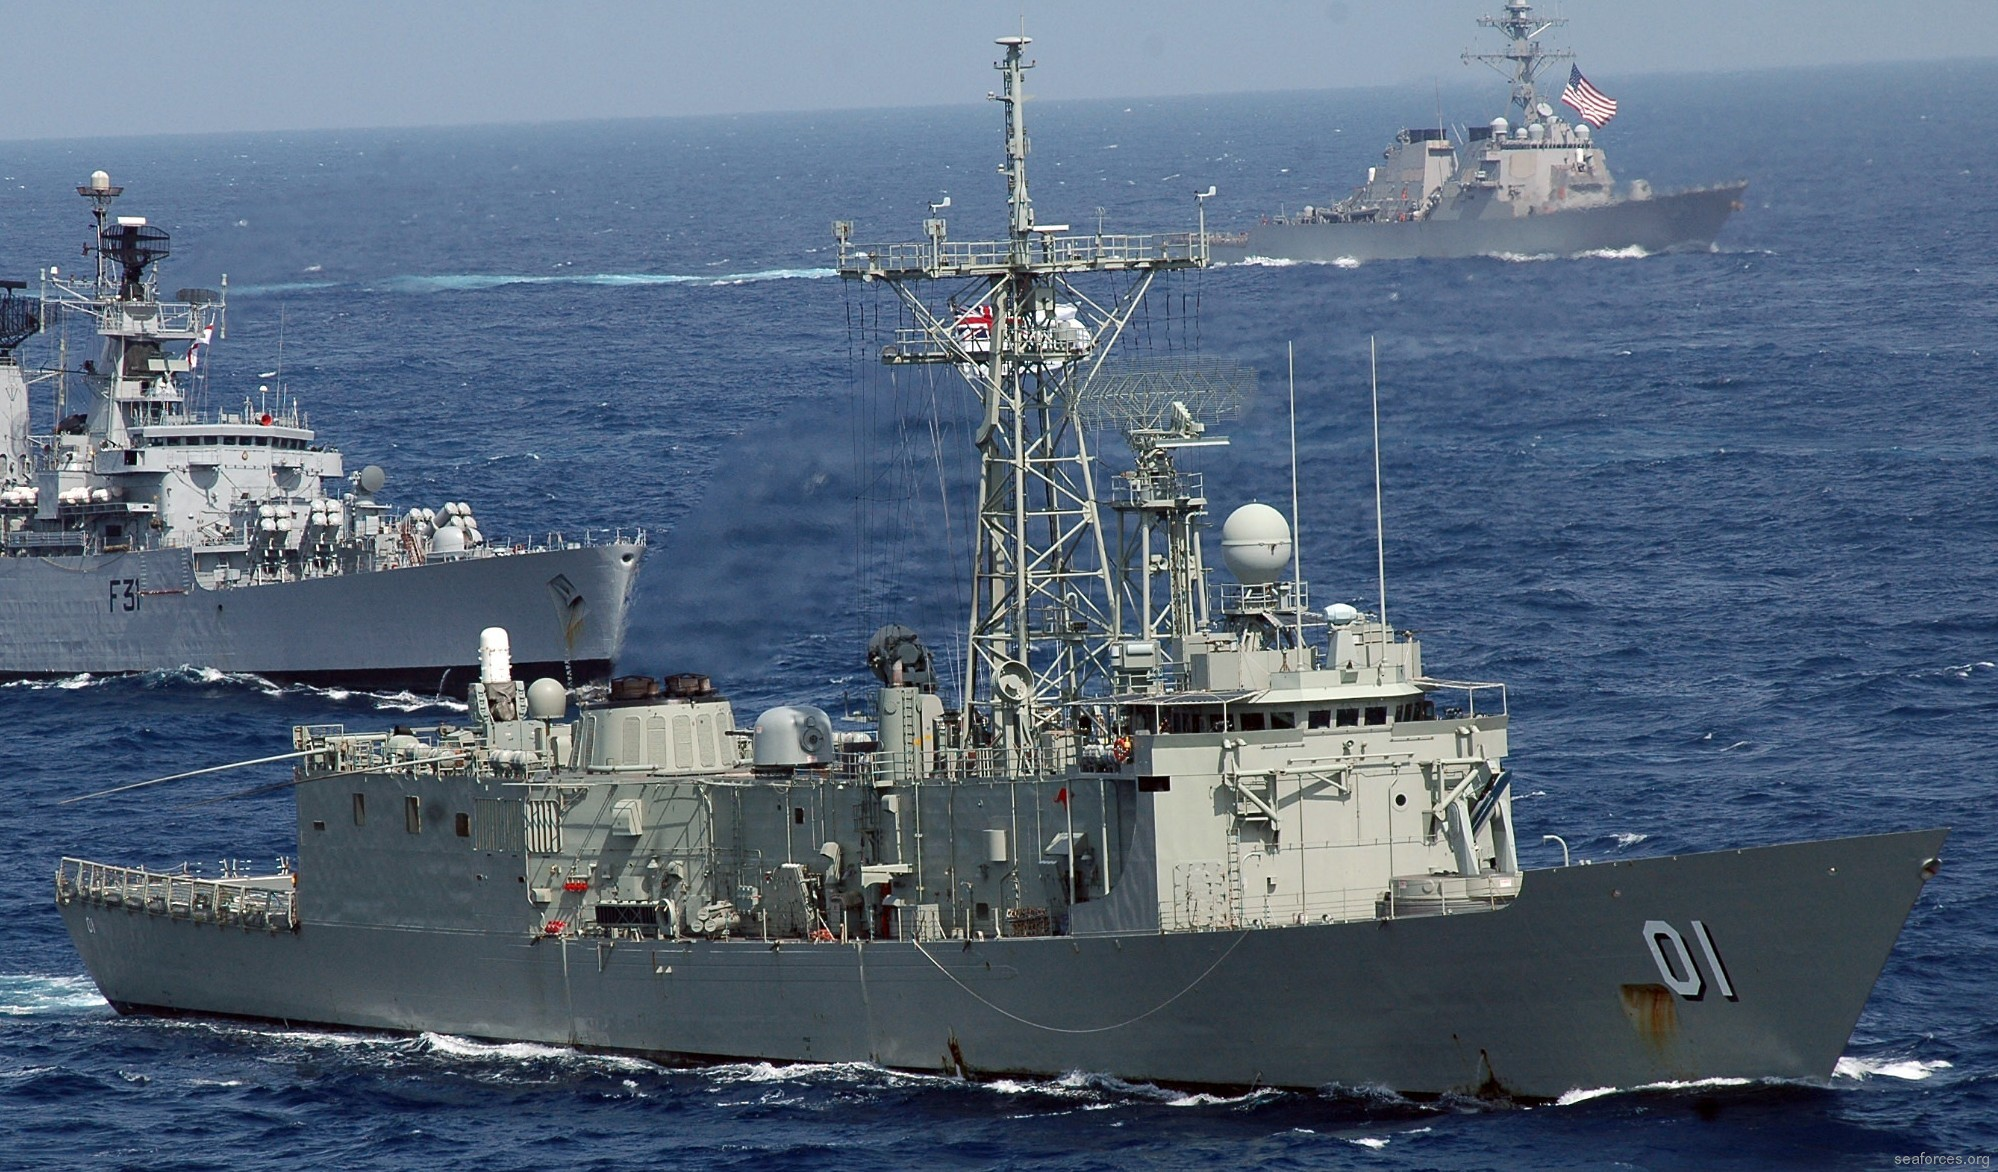 adelaide class guided missile frigate ffg royal australian navy hmas canberra sydney darwin melbourne newcastle